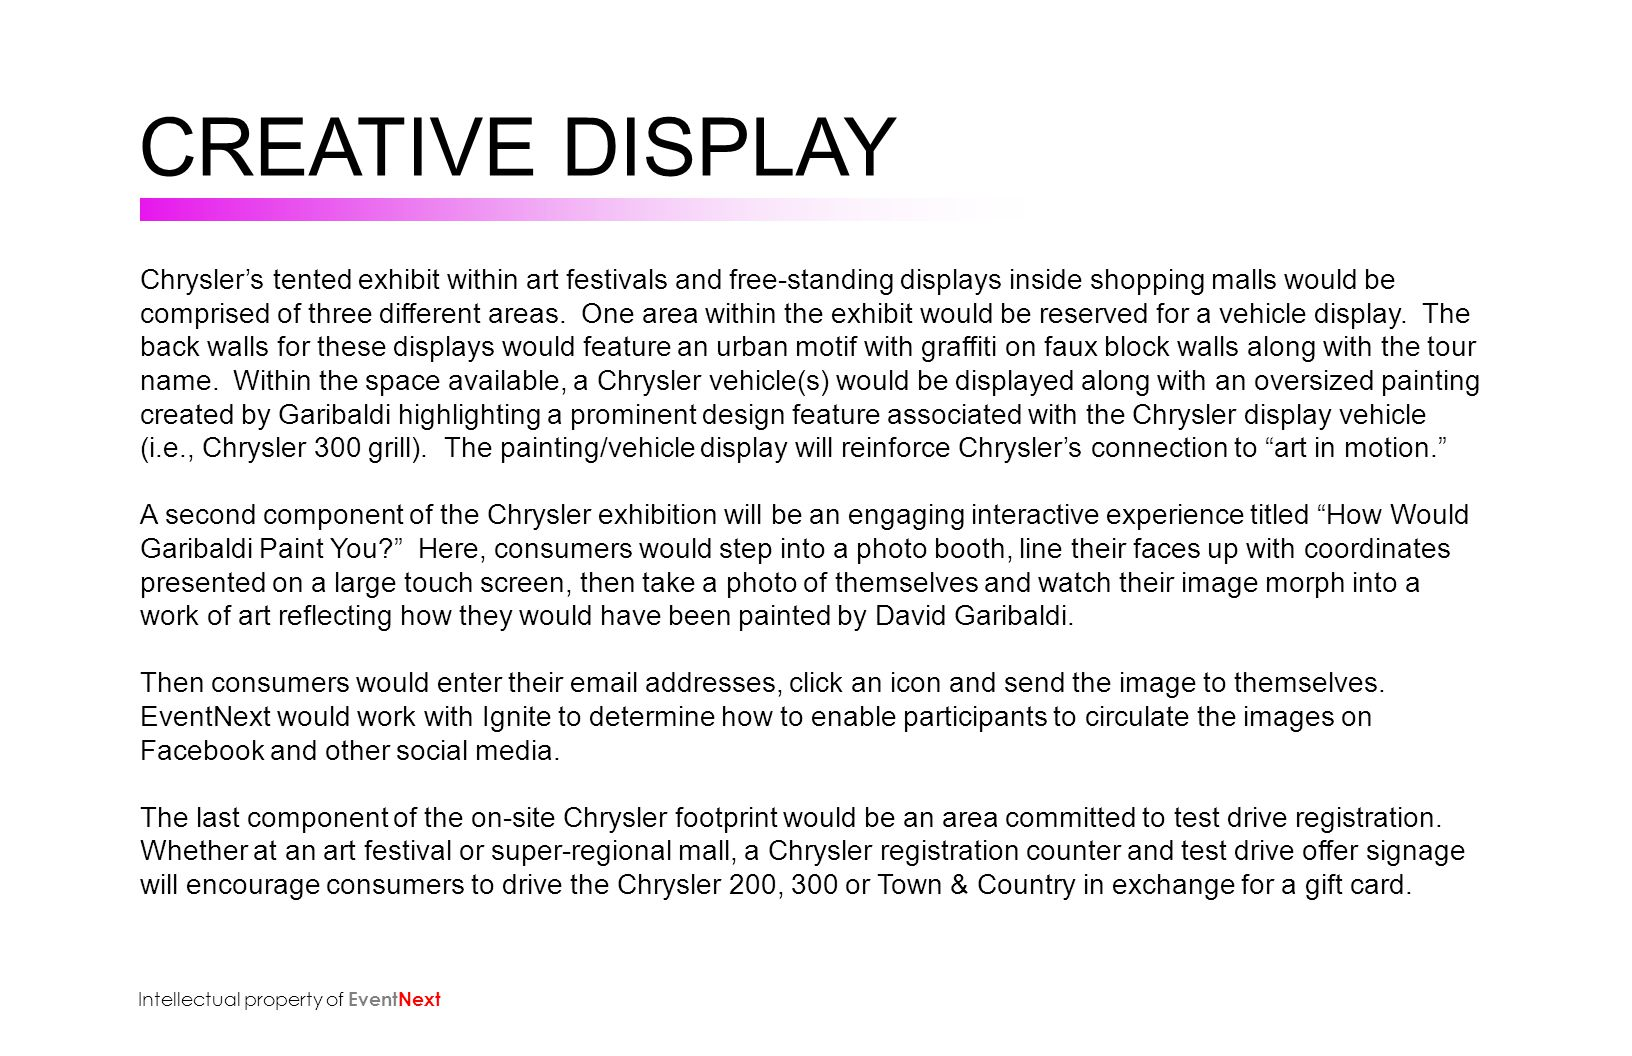 Chrysler's tented exhibit within art festivals and free-standing displays inside shopping malls would be comprised of three different areas.